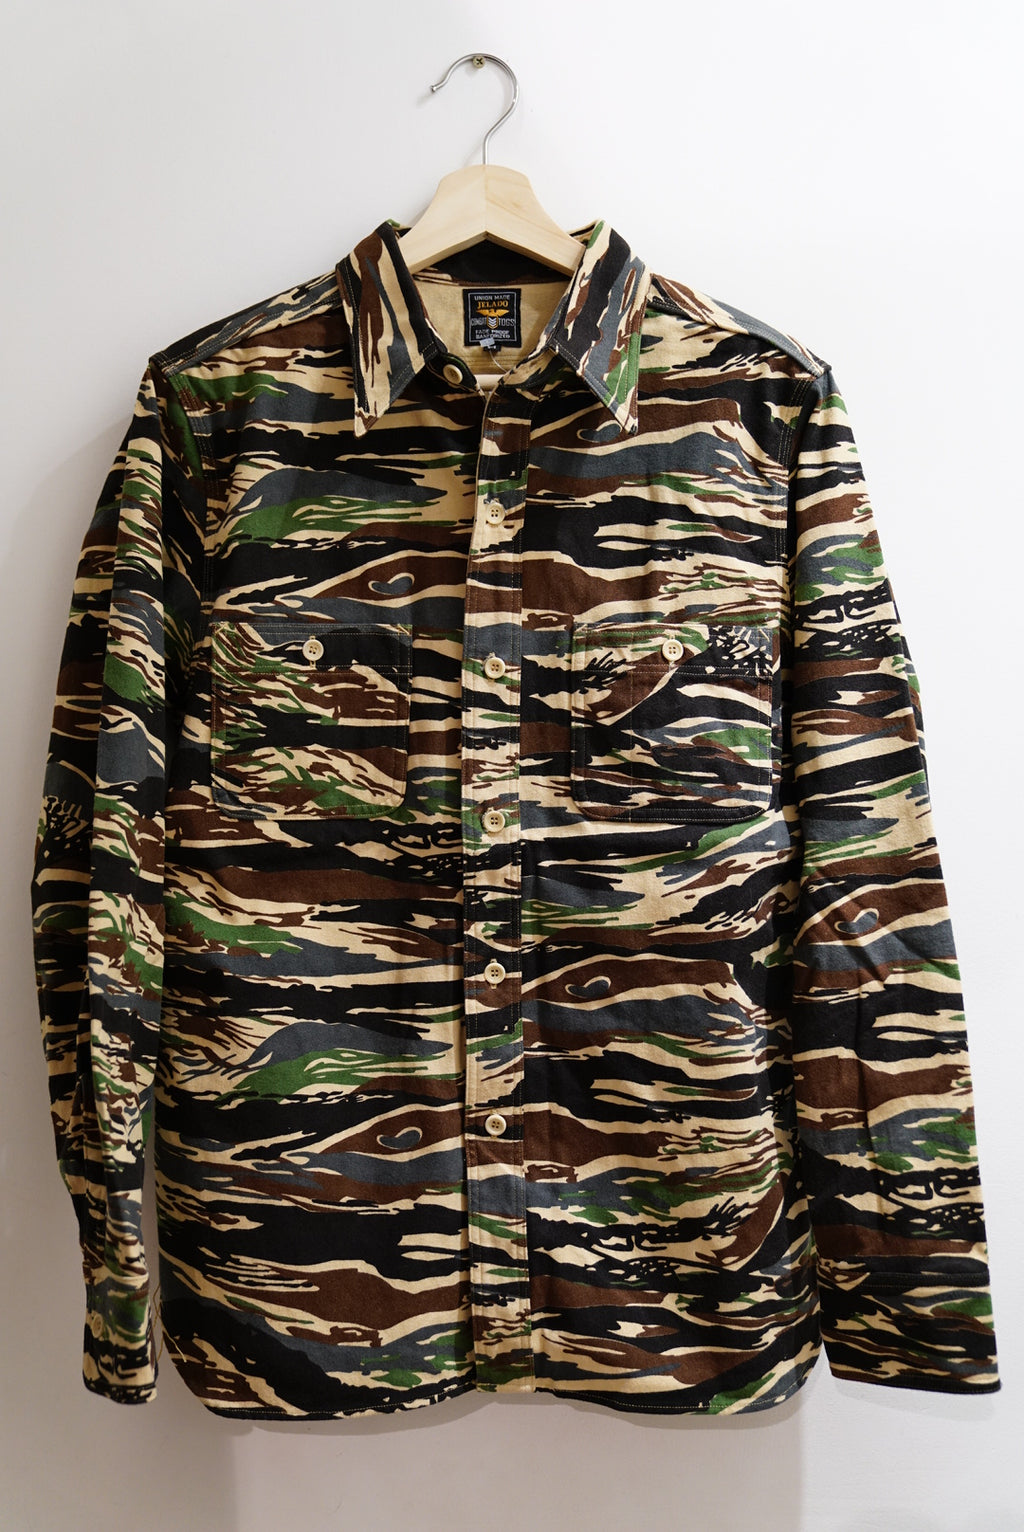 Jelado tiger duck camo shirt